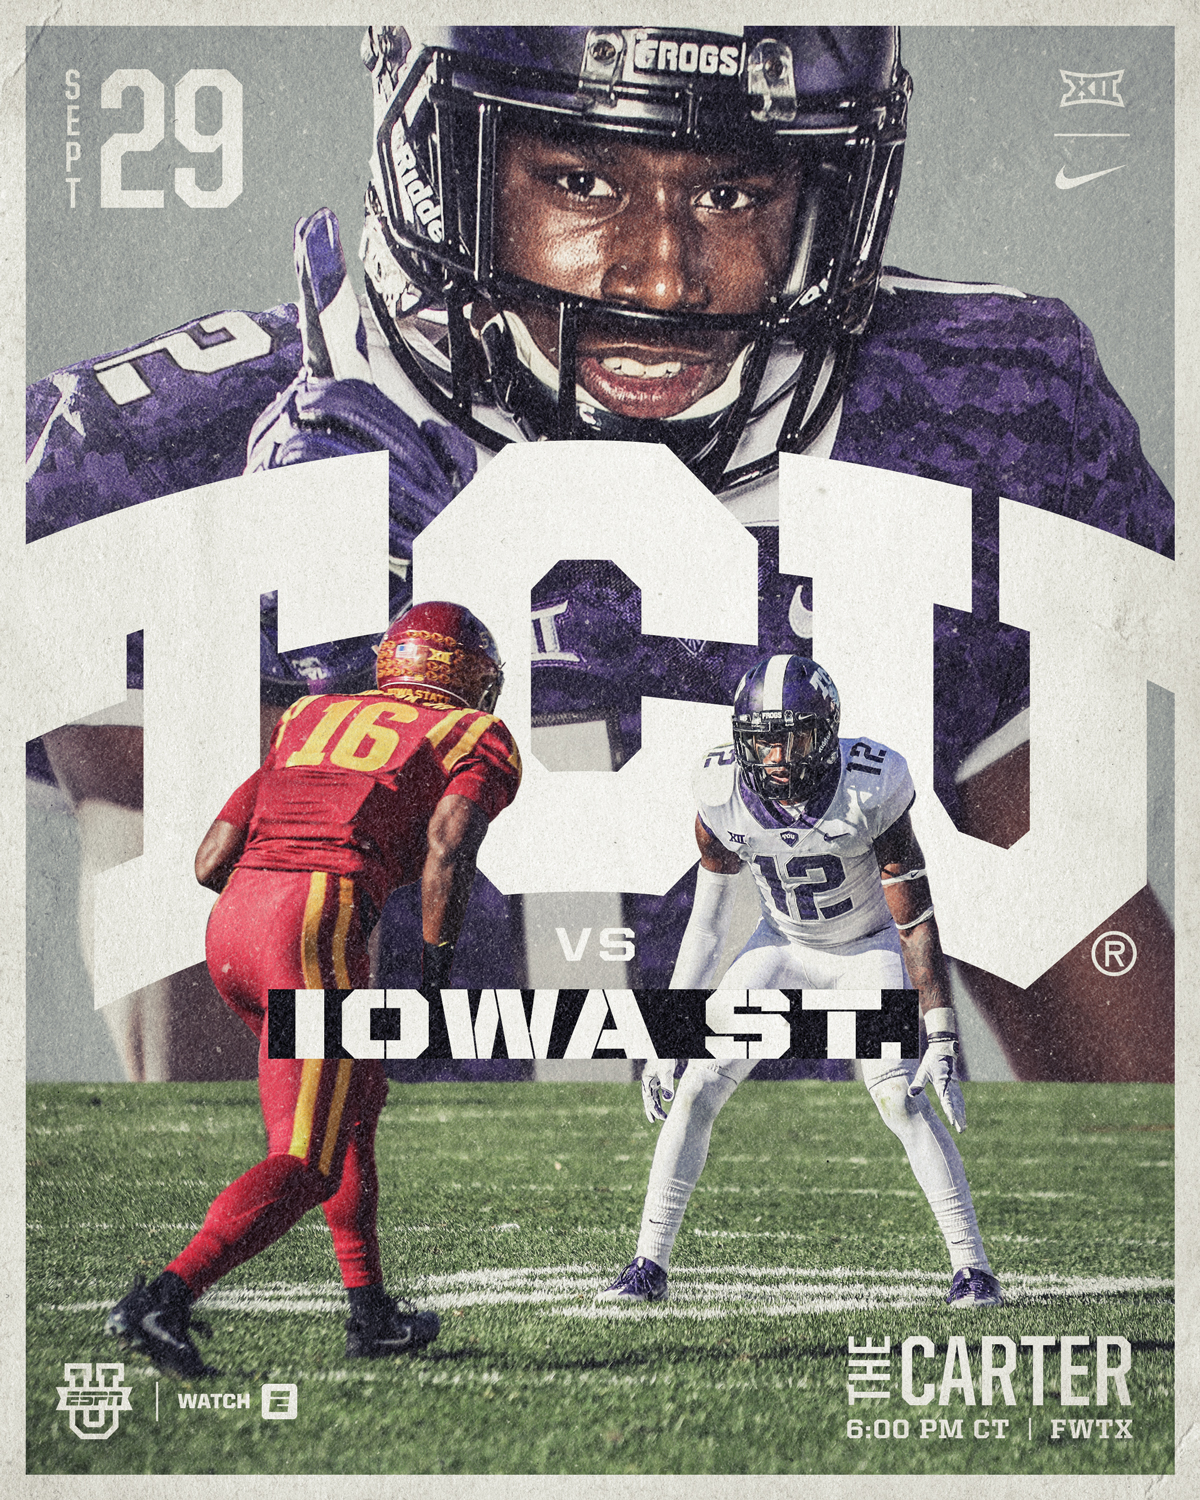 TCU vs Iowa St.